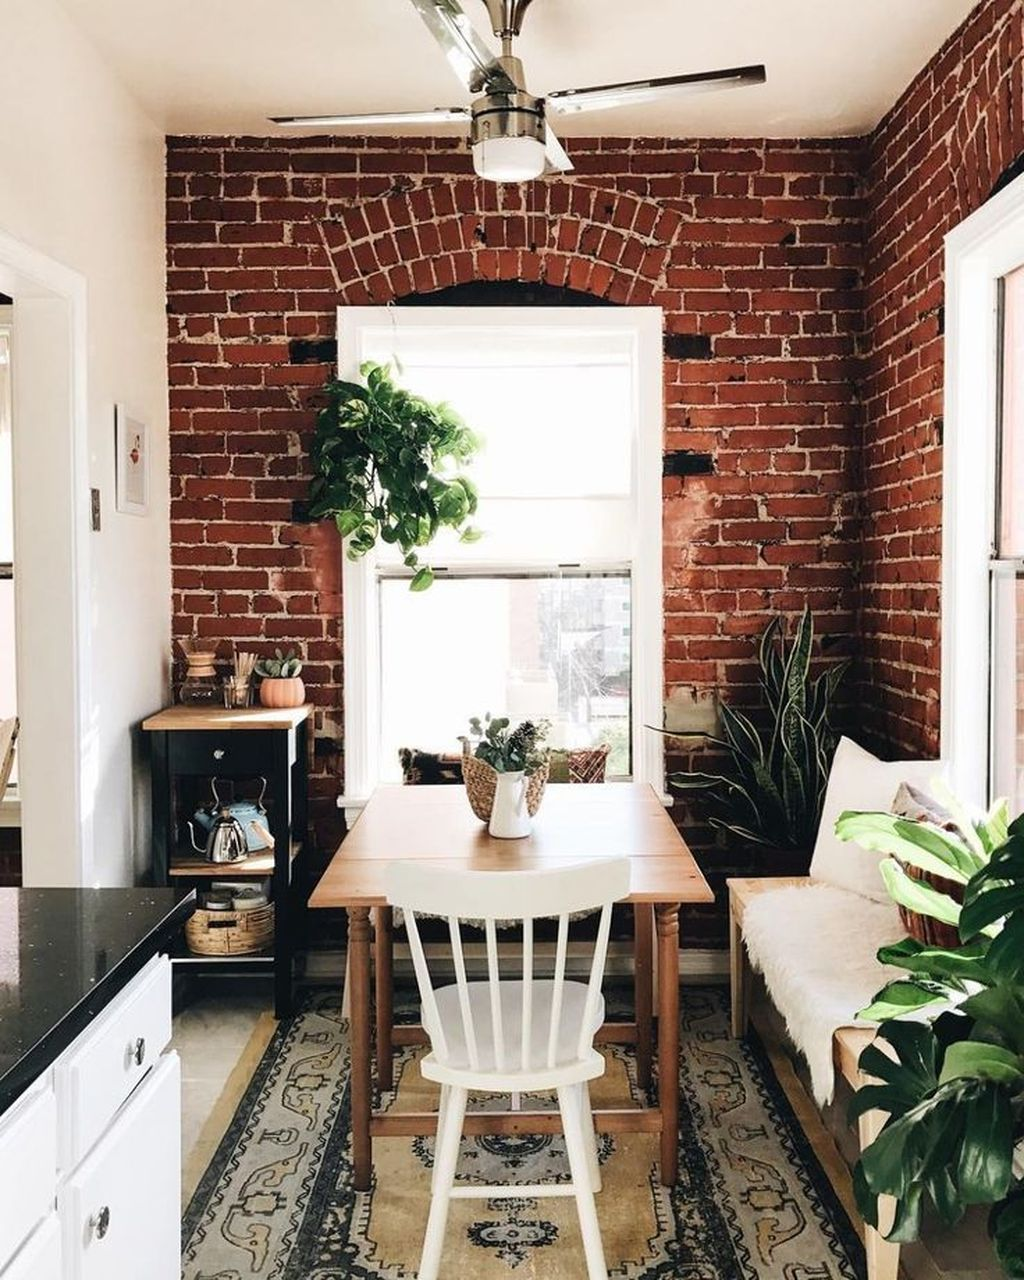 Affordable Studio Apartments: Pin By Garage Neatnik On Interior Design Trends